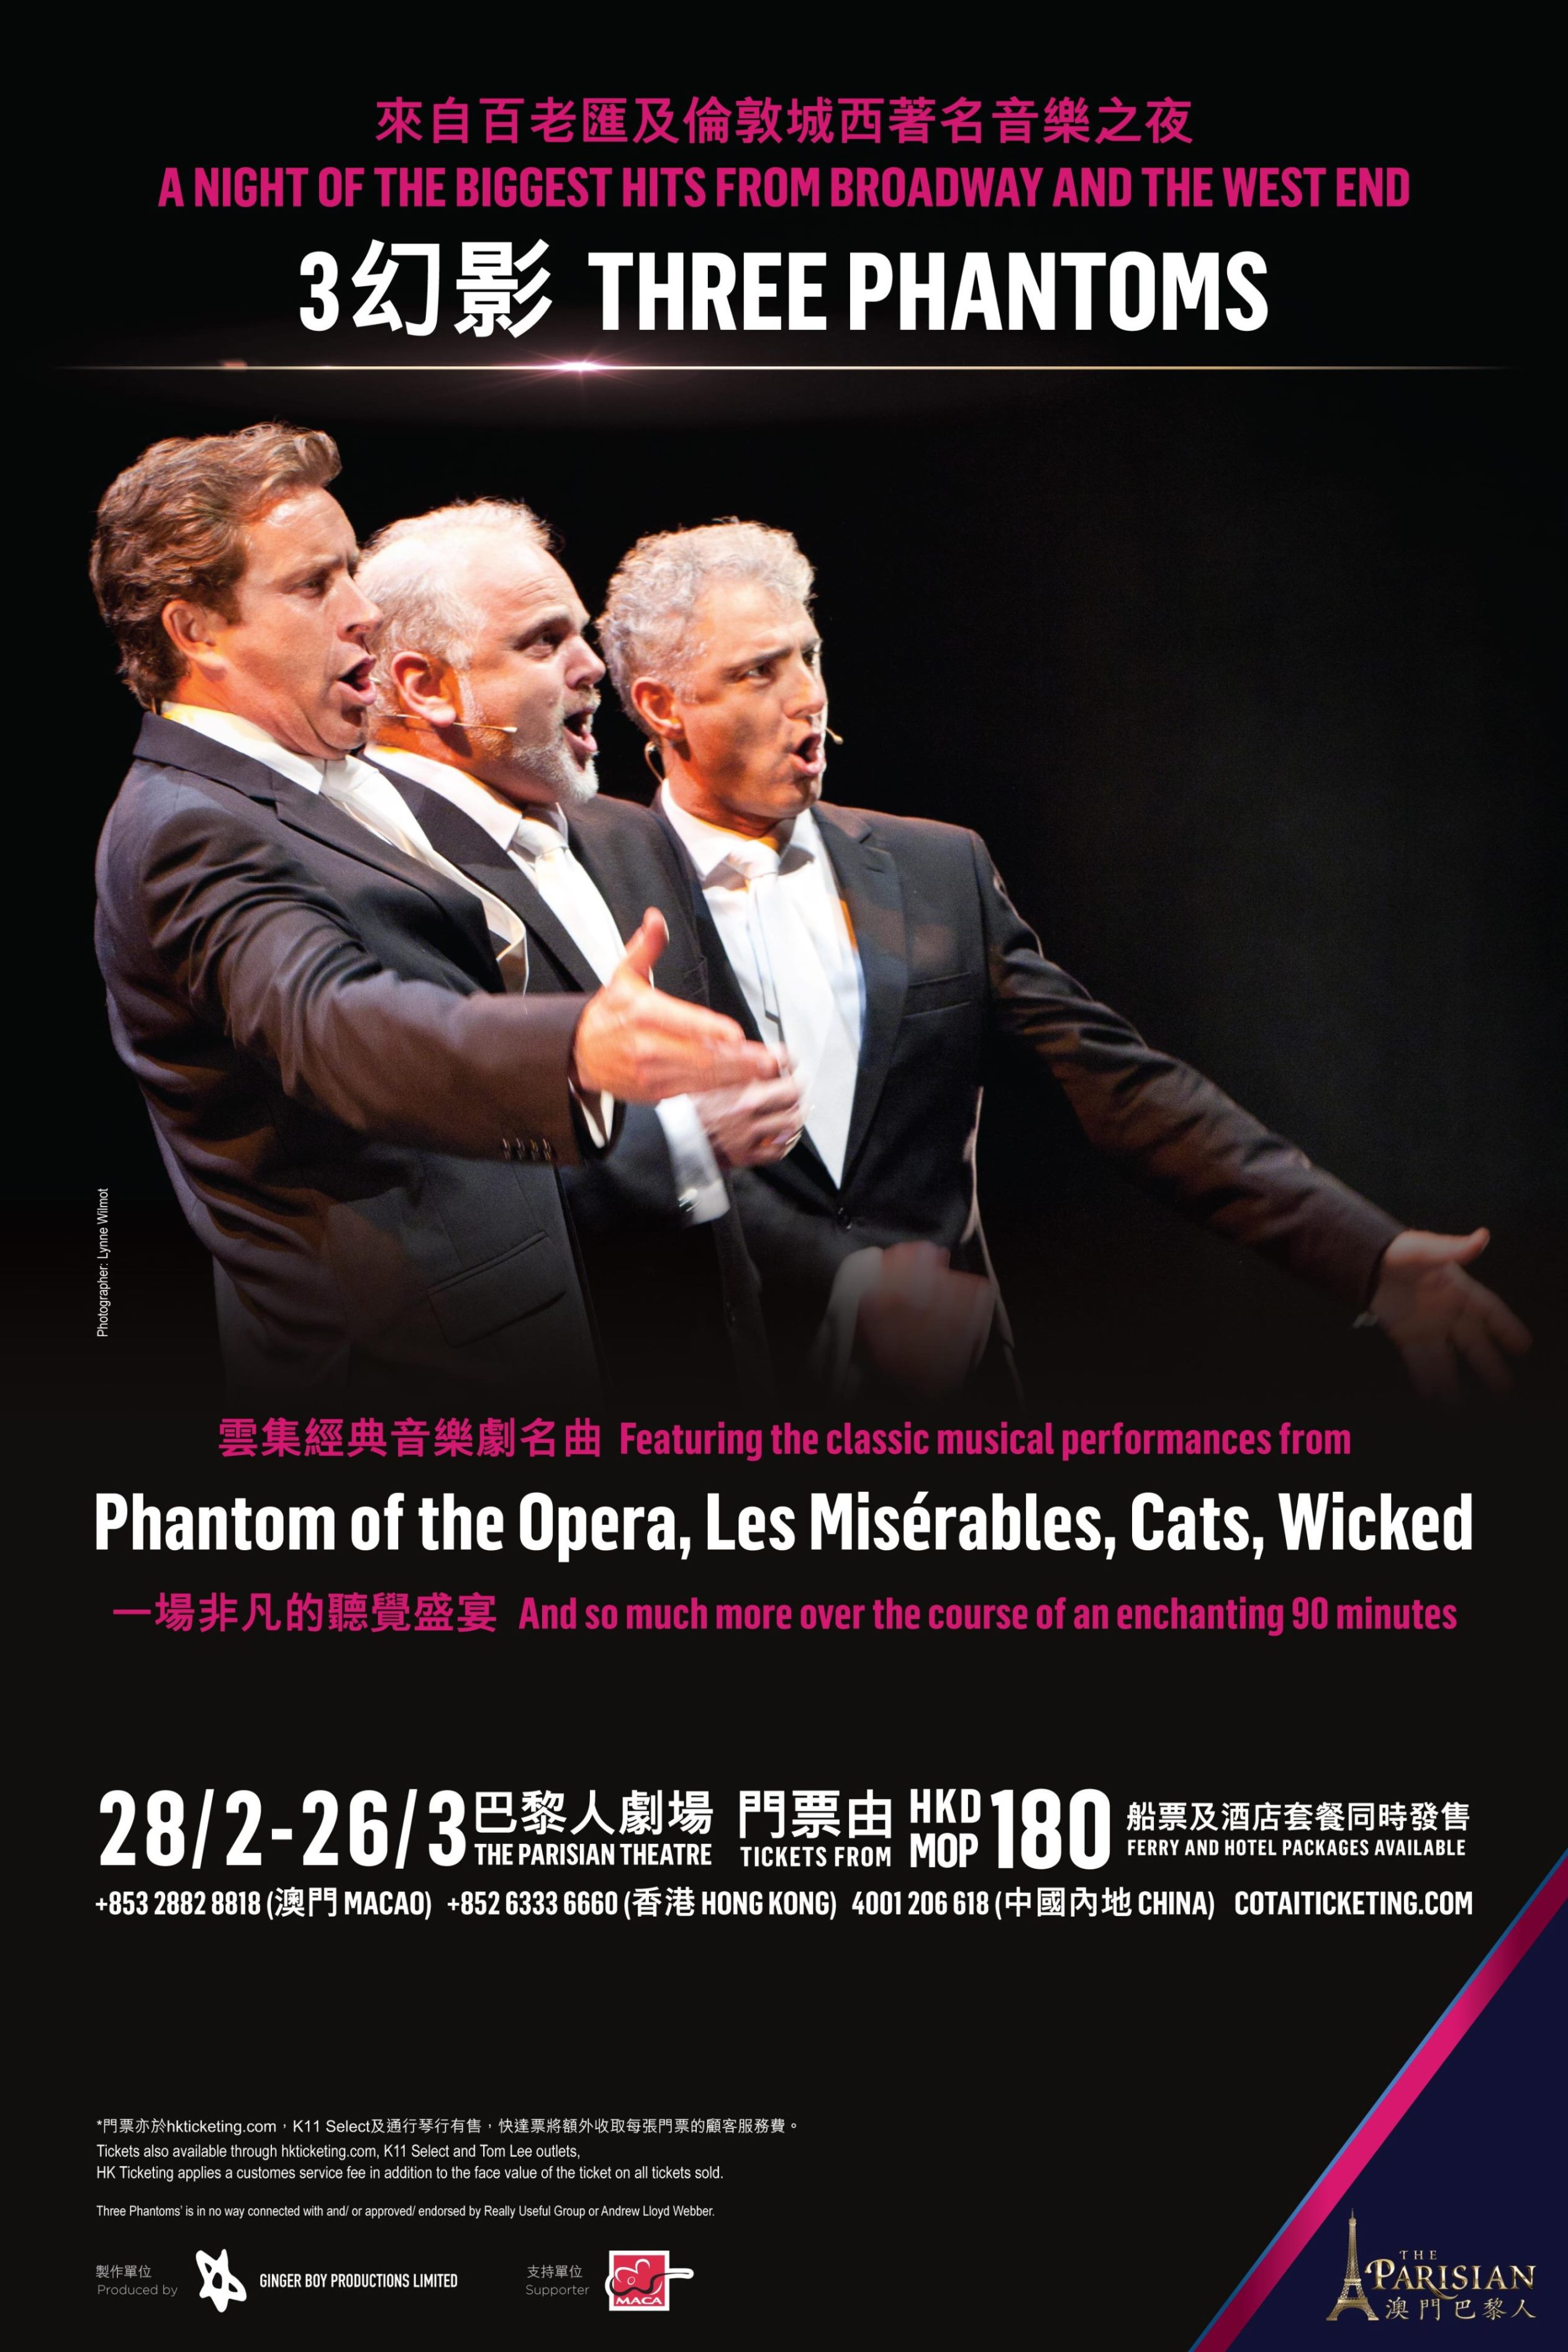 3 Phantoms Musical Opera Macau Parisian